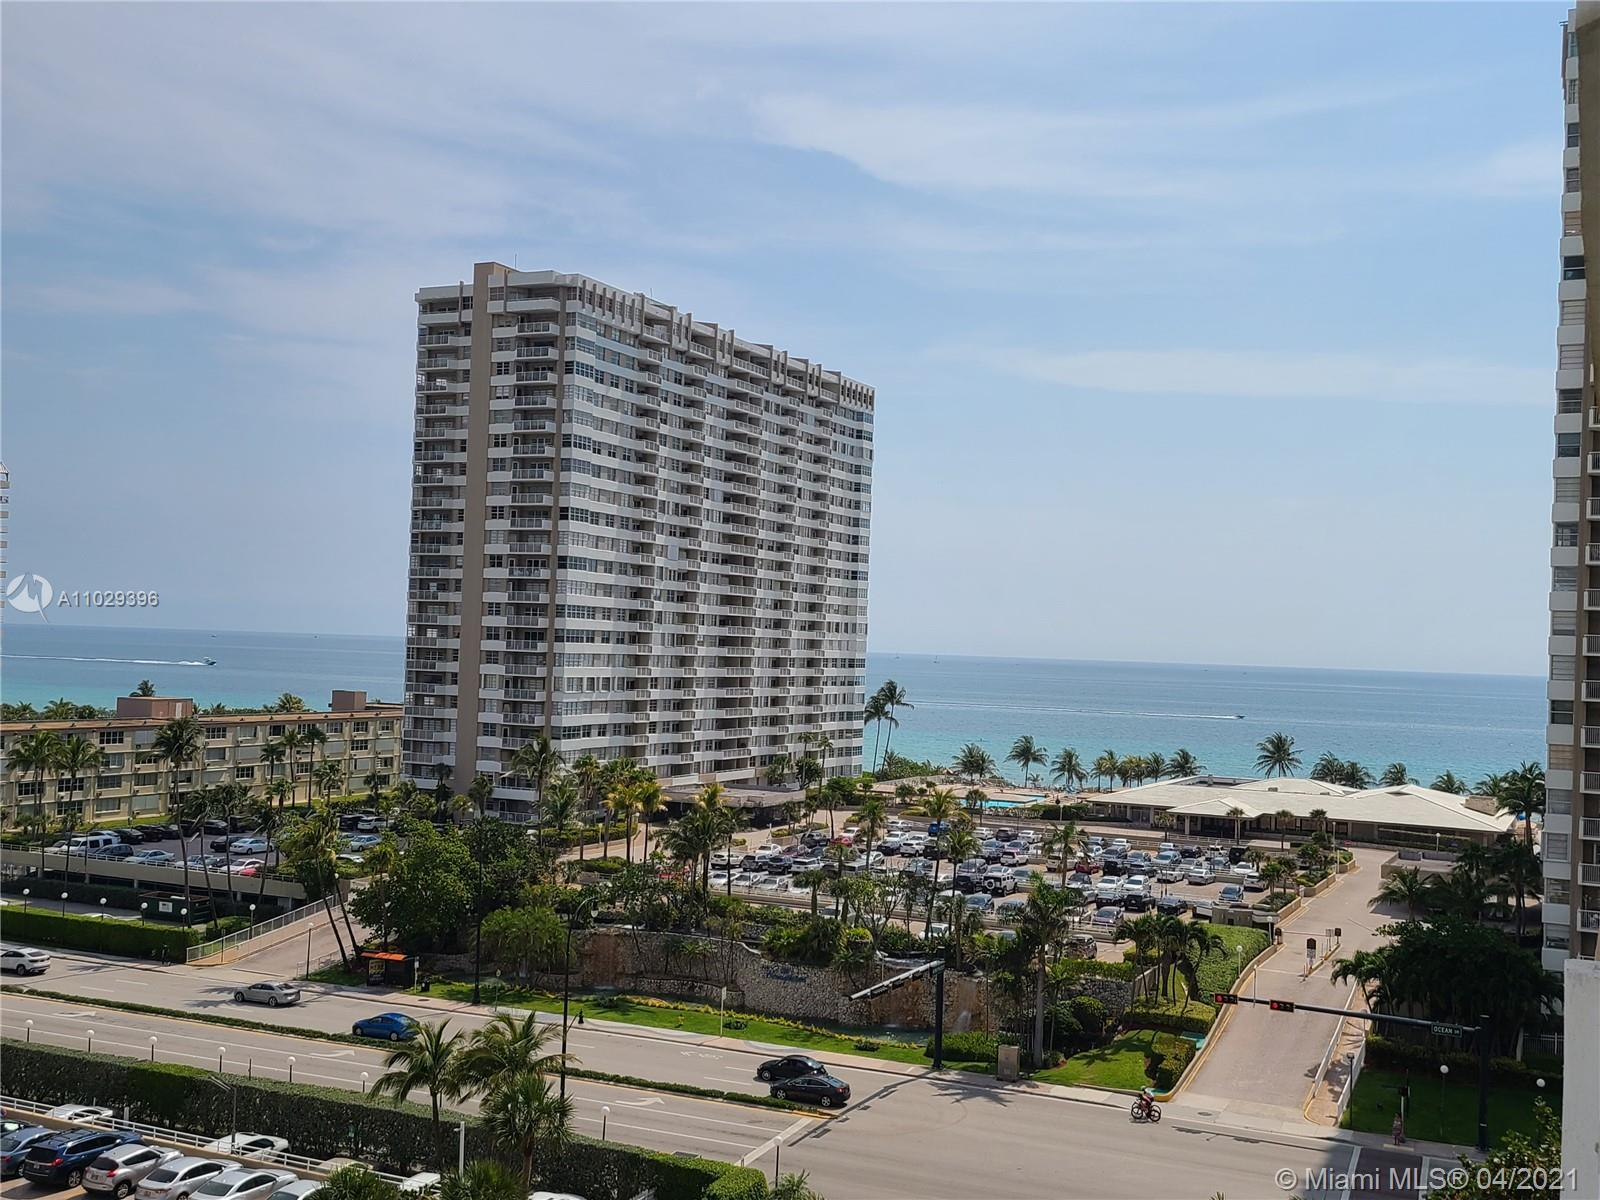 INTERCOASTAL AND OCEAN VIEWS, From this 8th floor, 1 Bedroom, 1.5 Bath facing North with Magnificent